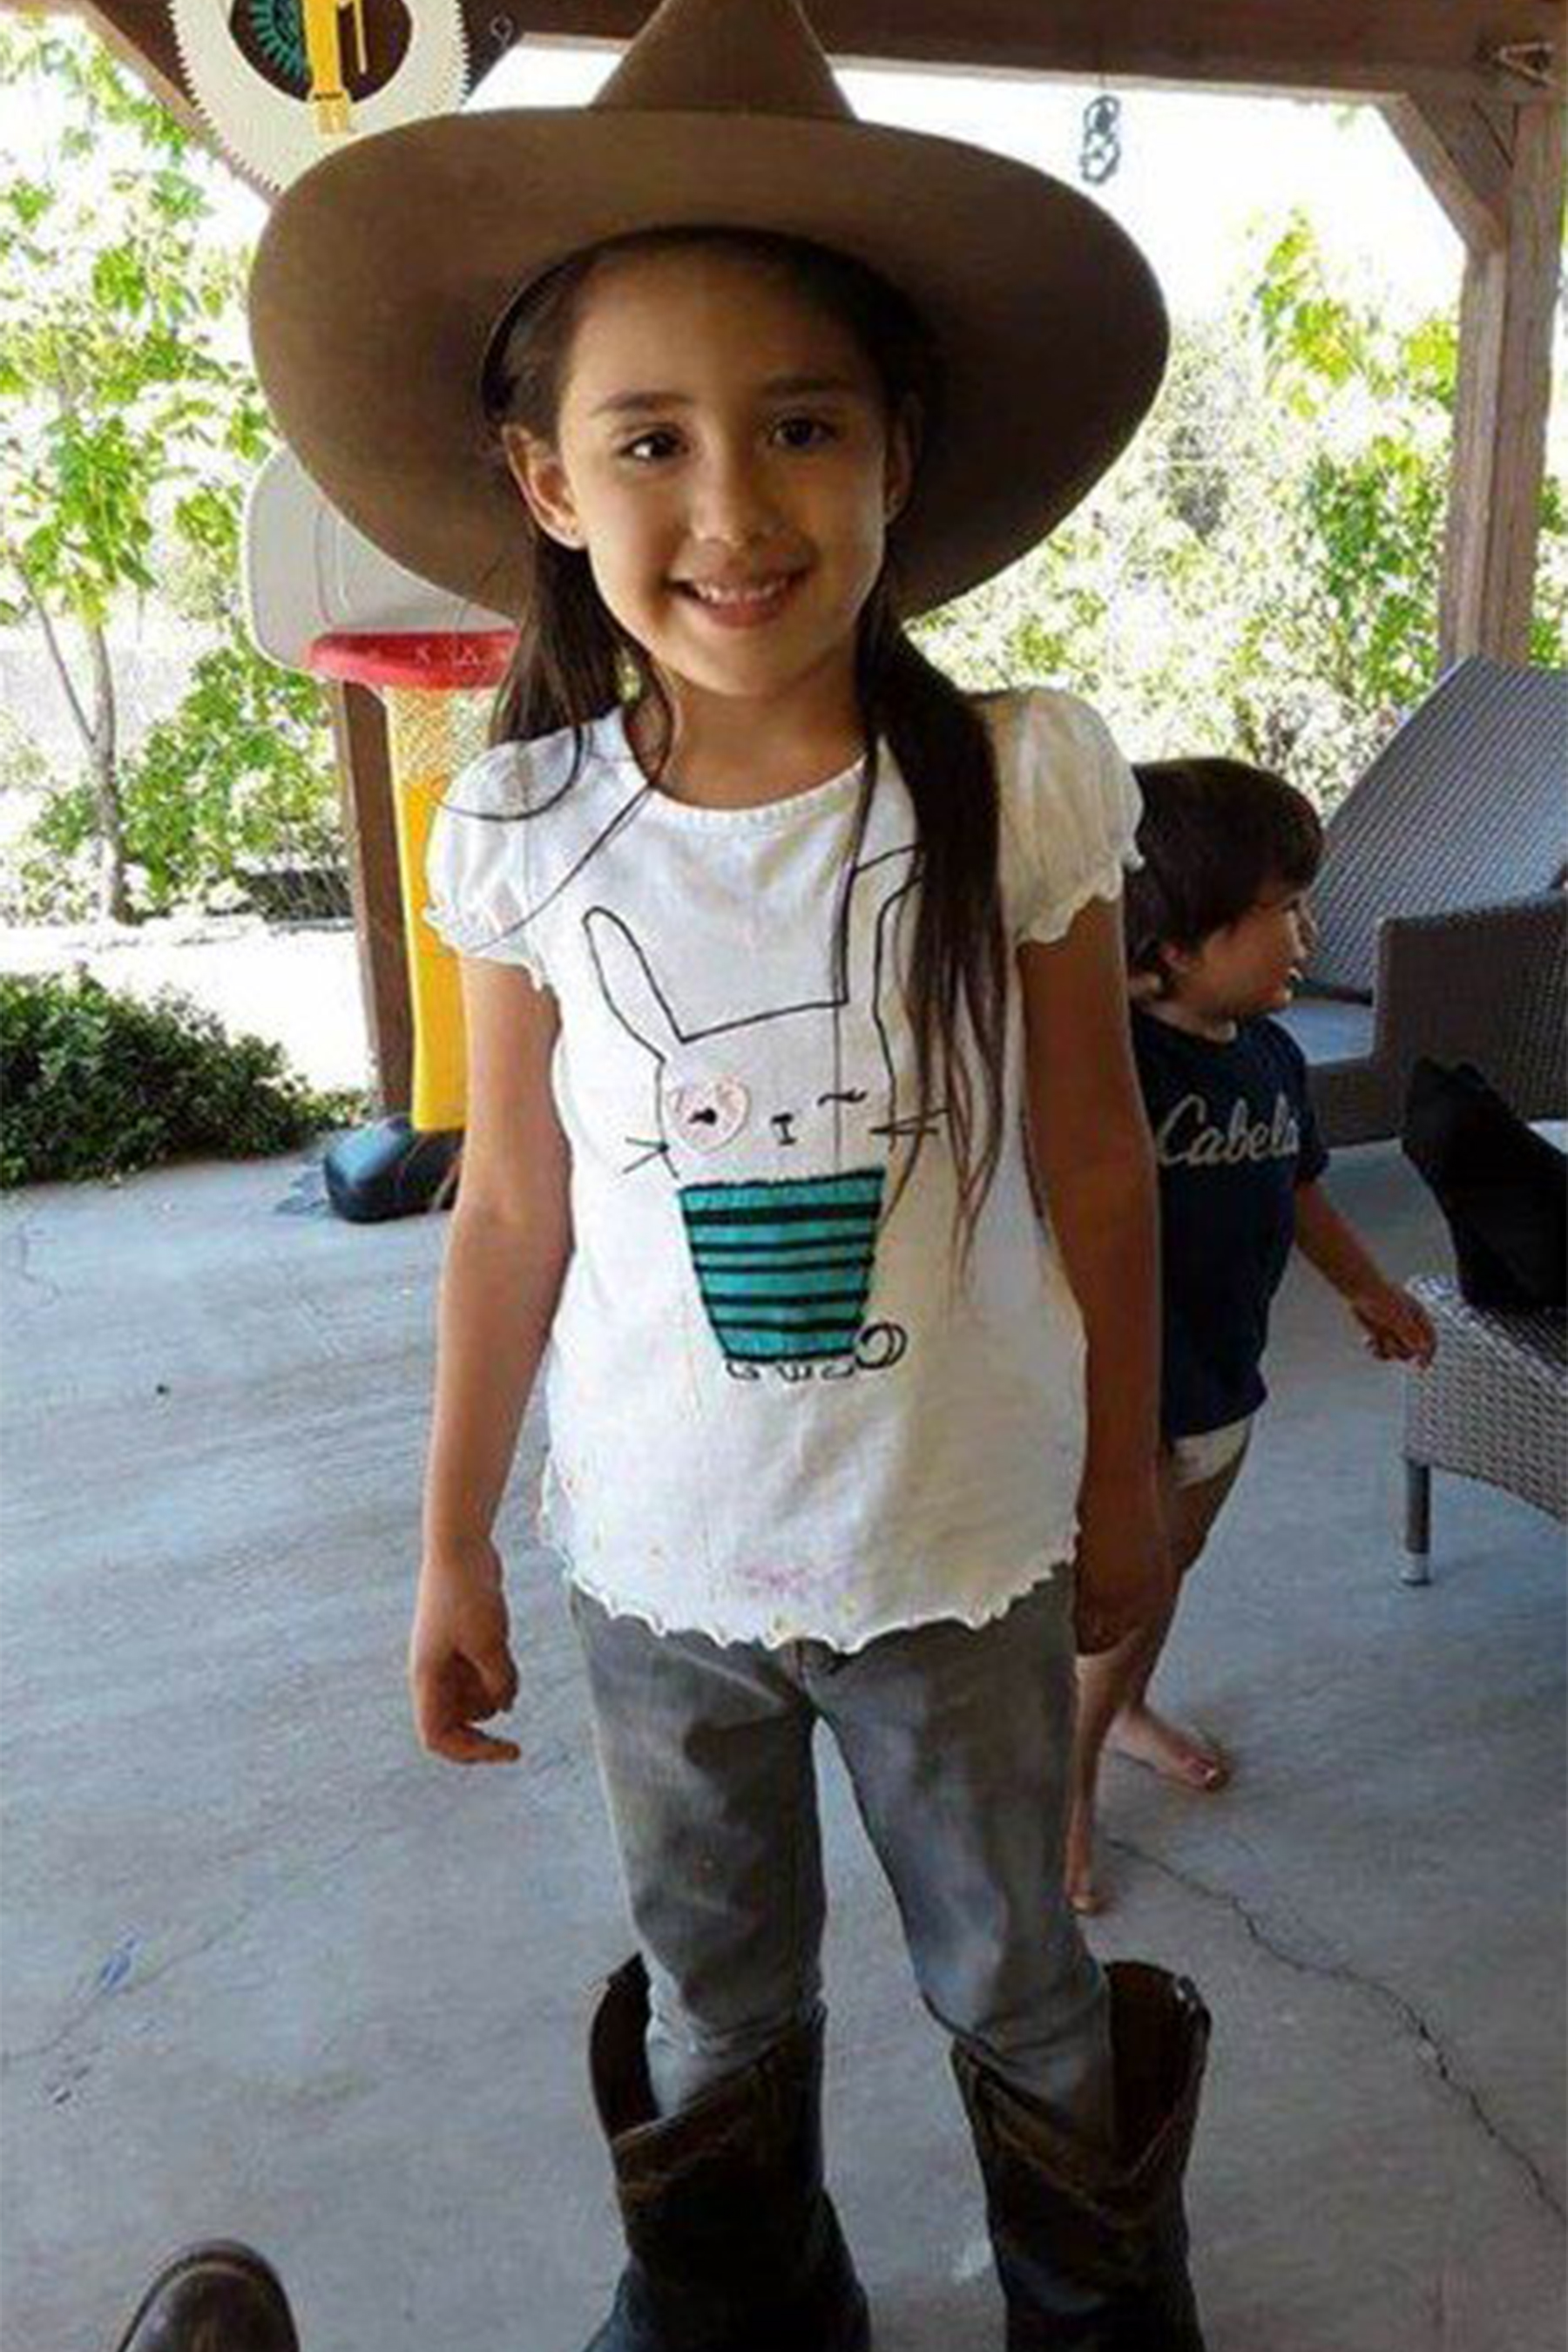 'Assume She's in Danger': New Mexico Girl, 5, Has Been Missing for Days — and Authorities Have No Leads